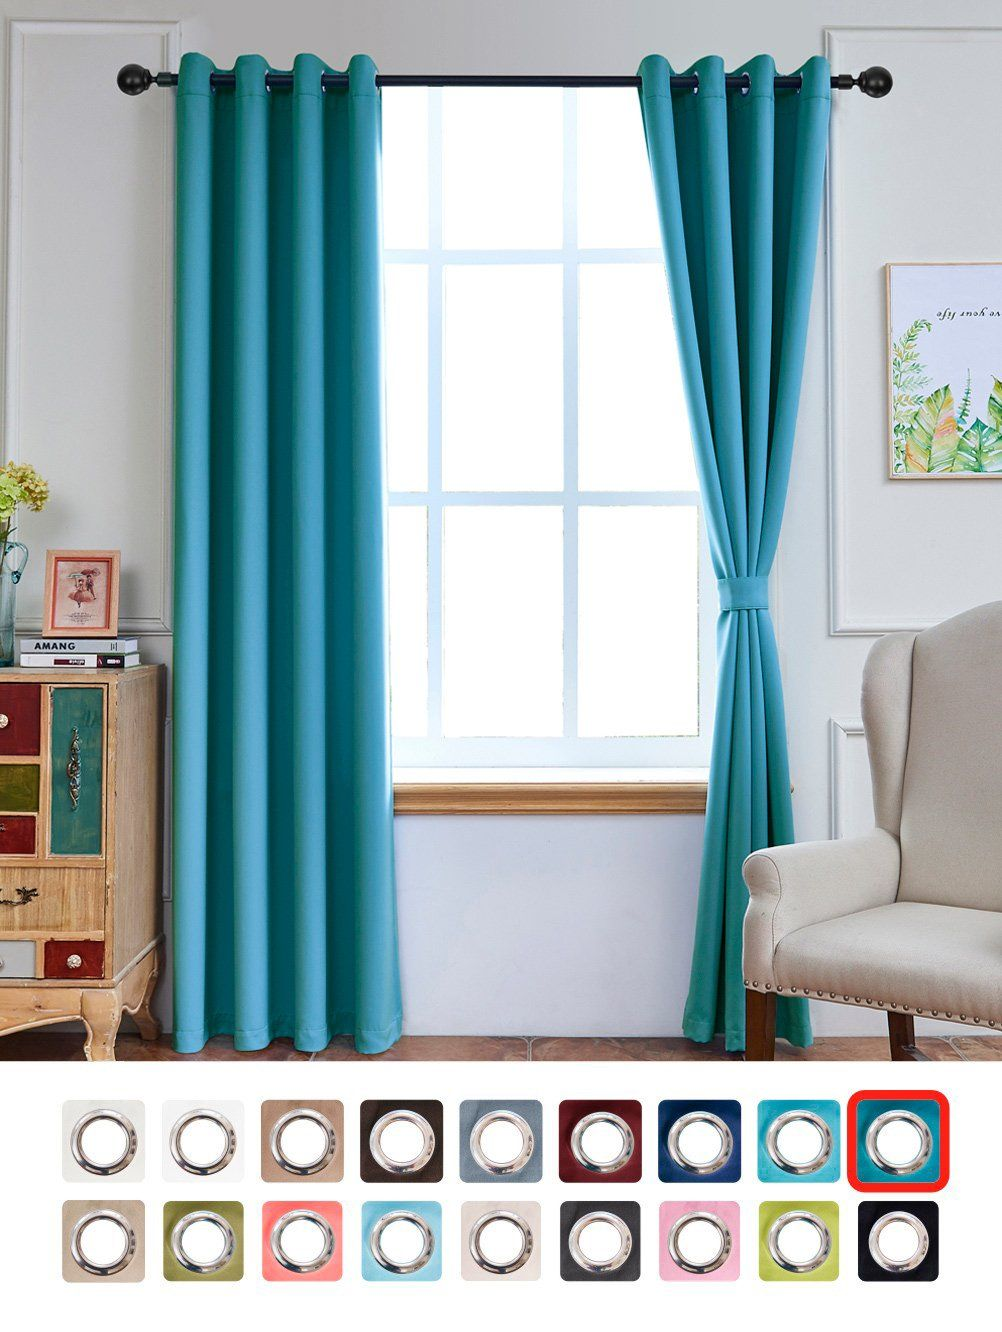 lined nz for curtainsthermal walmart thermal grommet curtain good chair on balance blackout magnificent sale looking energy drapes insulated cold splendid red greenhouse efficient curtains costco